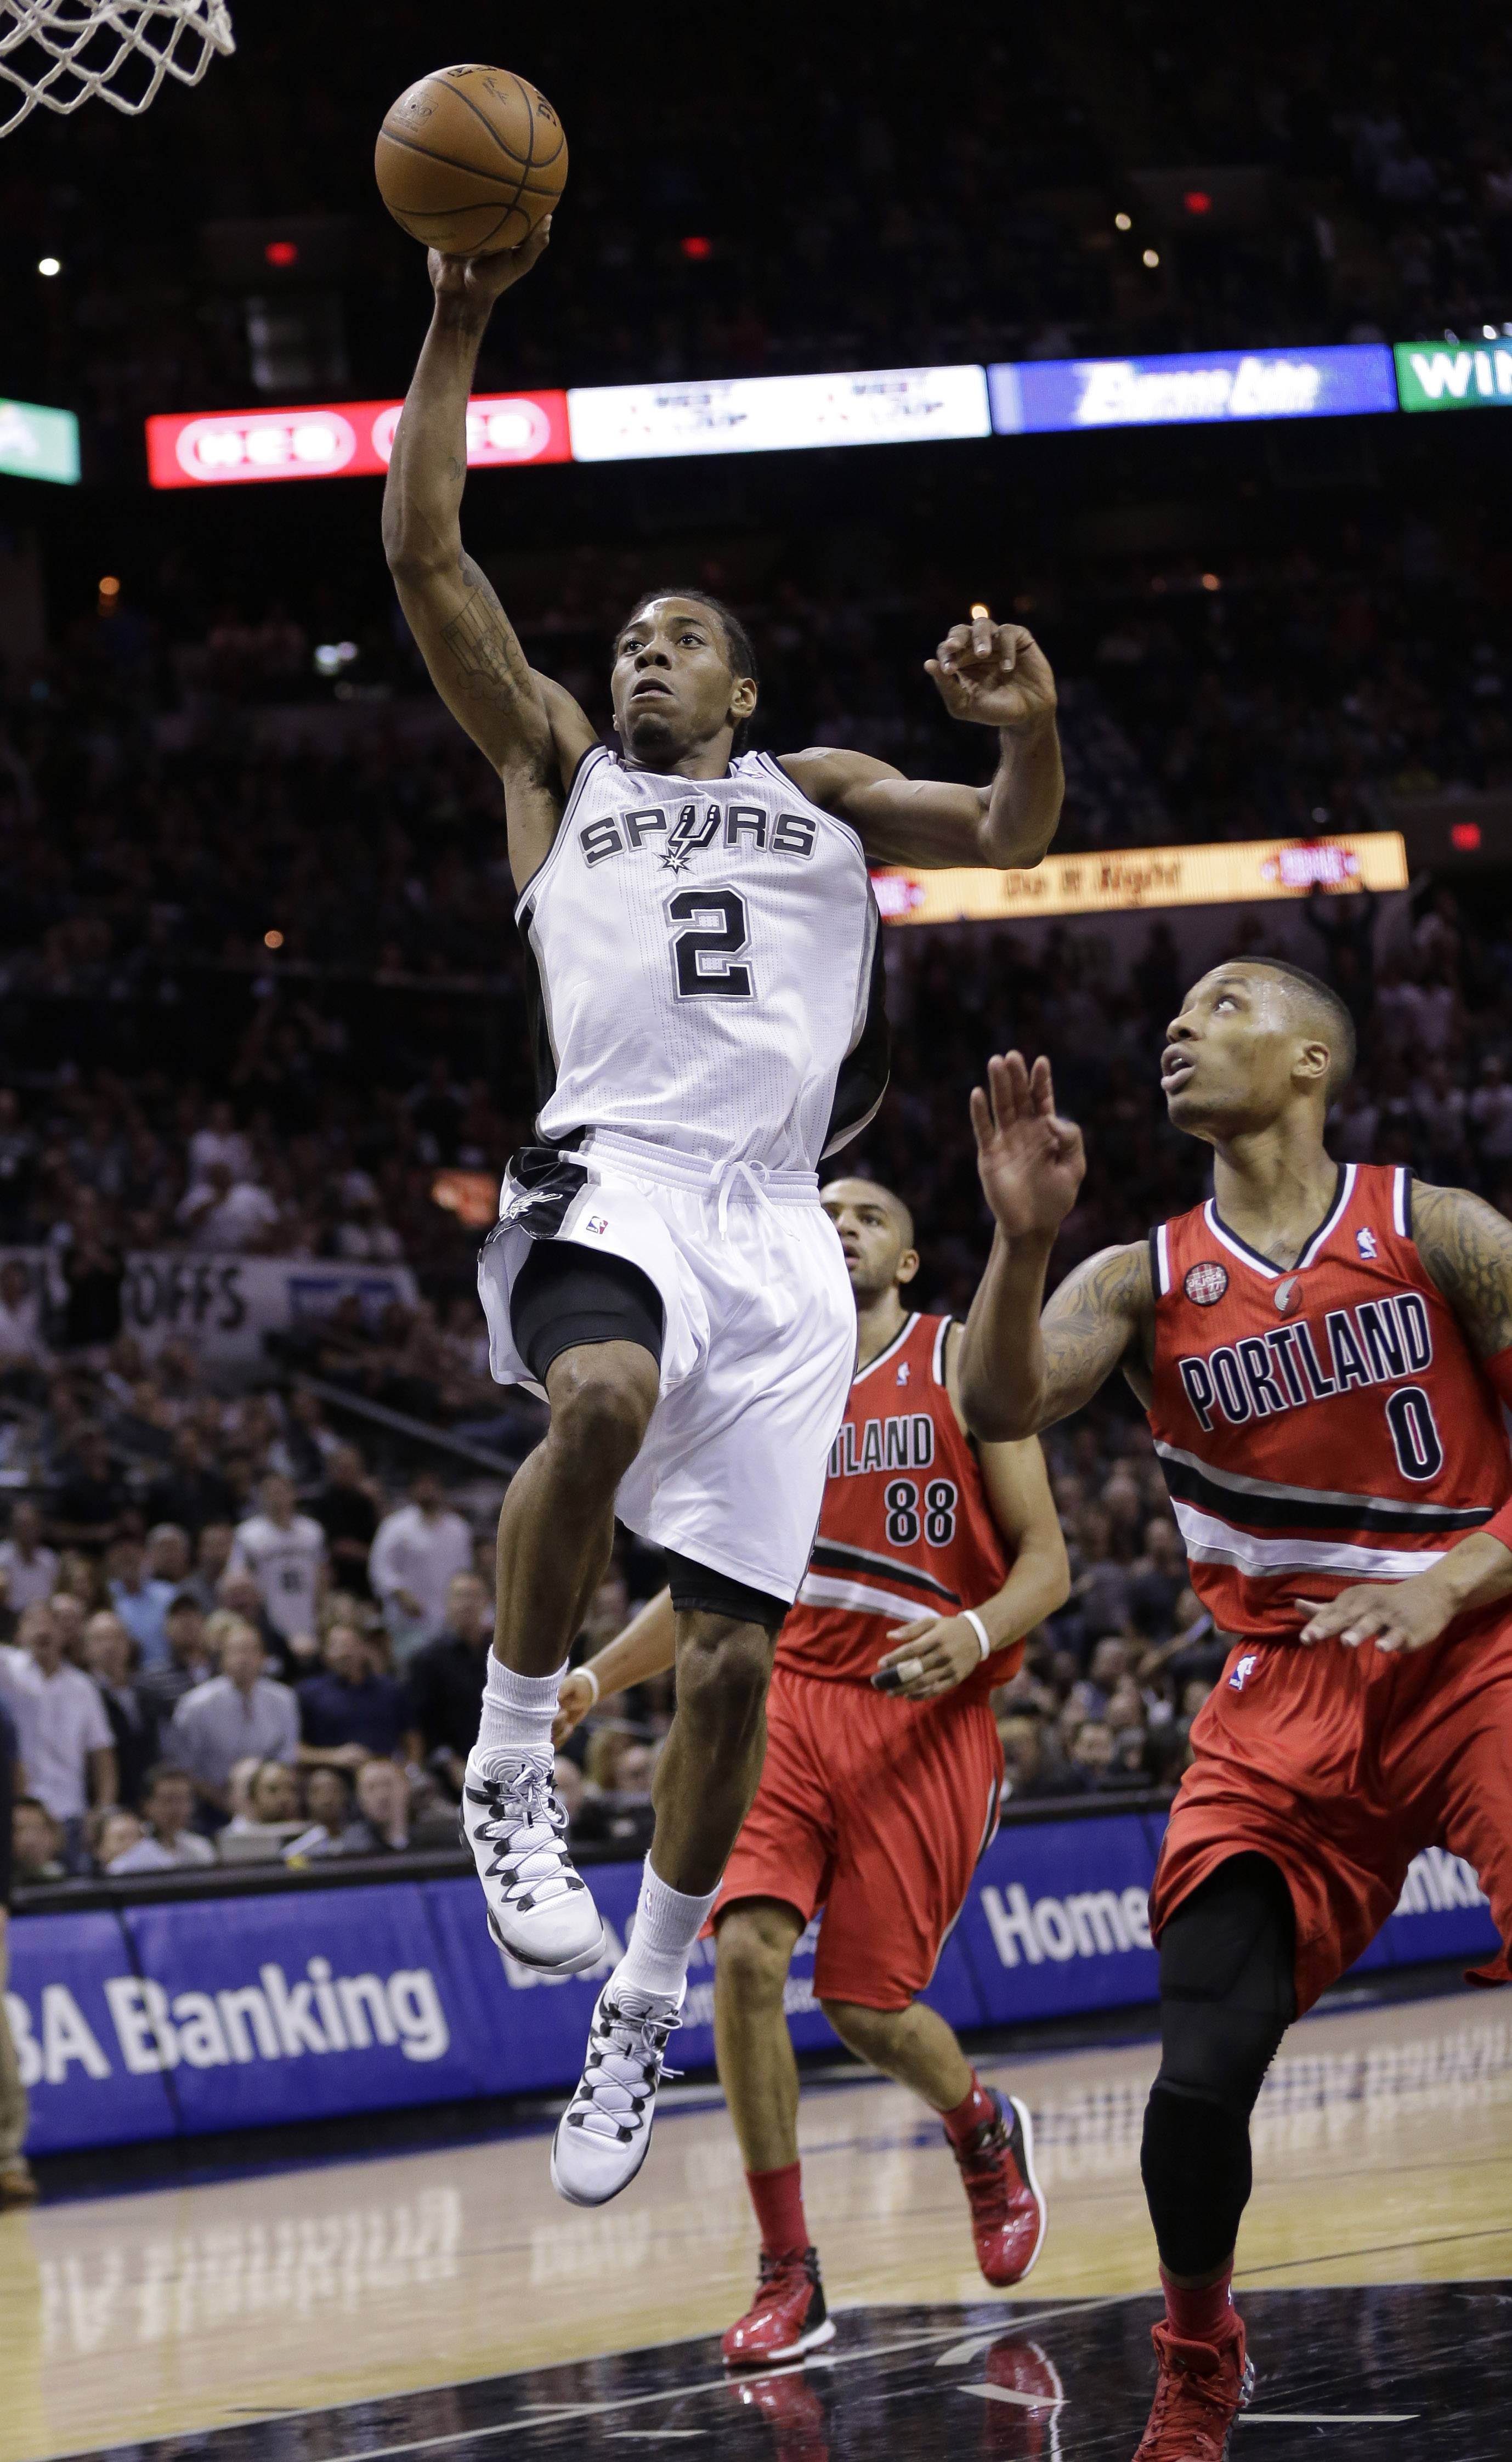 San Antonio Spurs' Kawhi Leonard (2) scores in front of Portland Trail Blazers' Damian Lillard (0) during the second half of Game 5 of a Western Conference semifinal NBA basketball playoff series, Wednesday, May 14, 2014, in San Antonio.